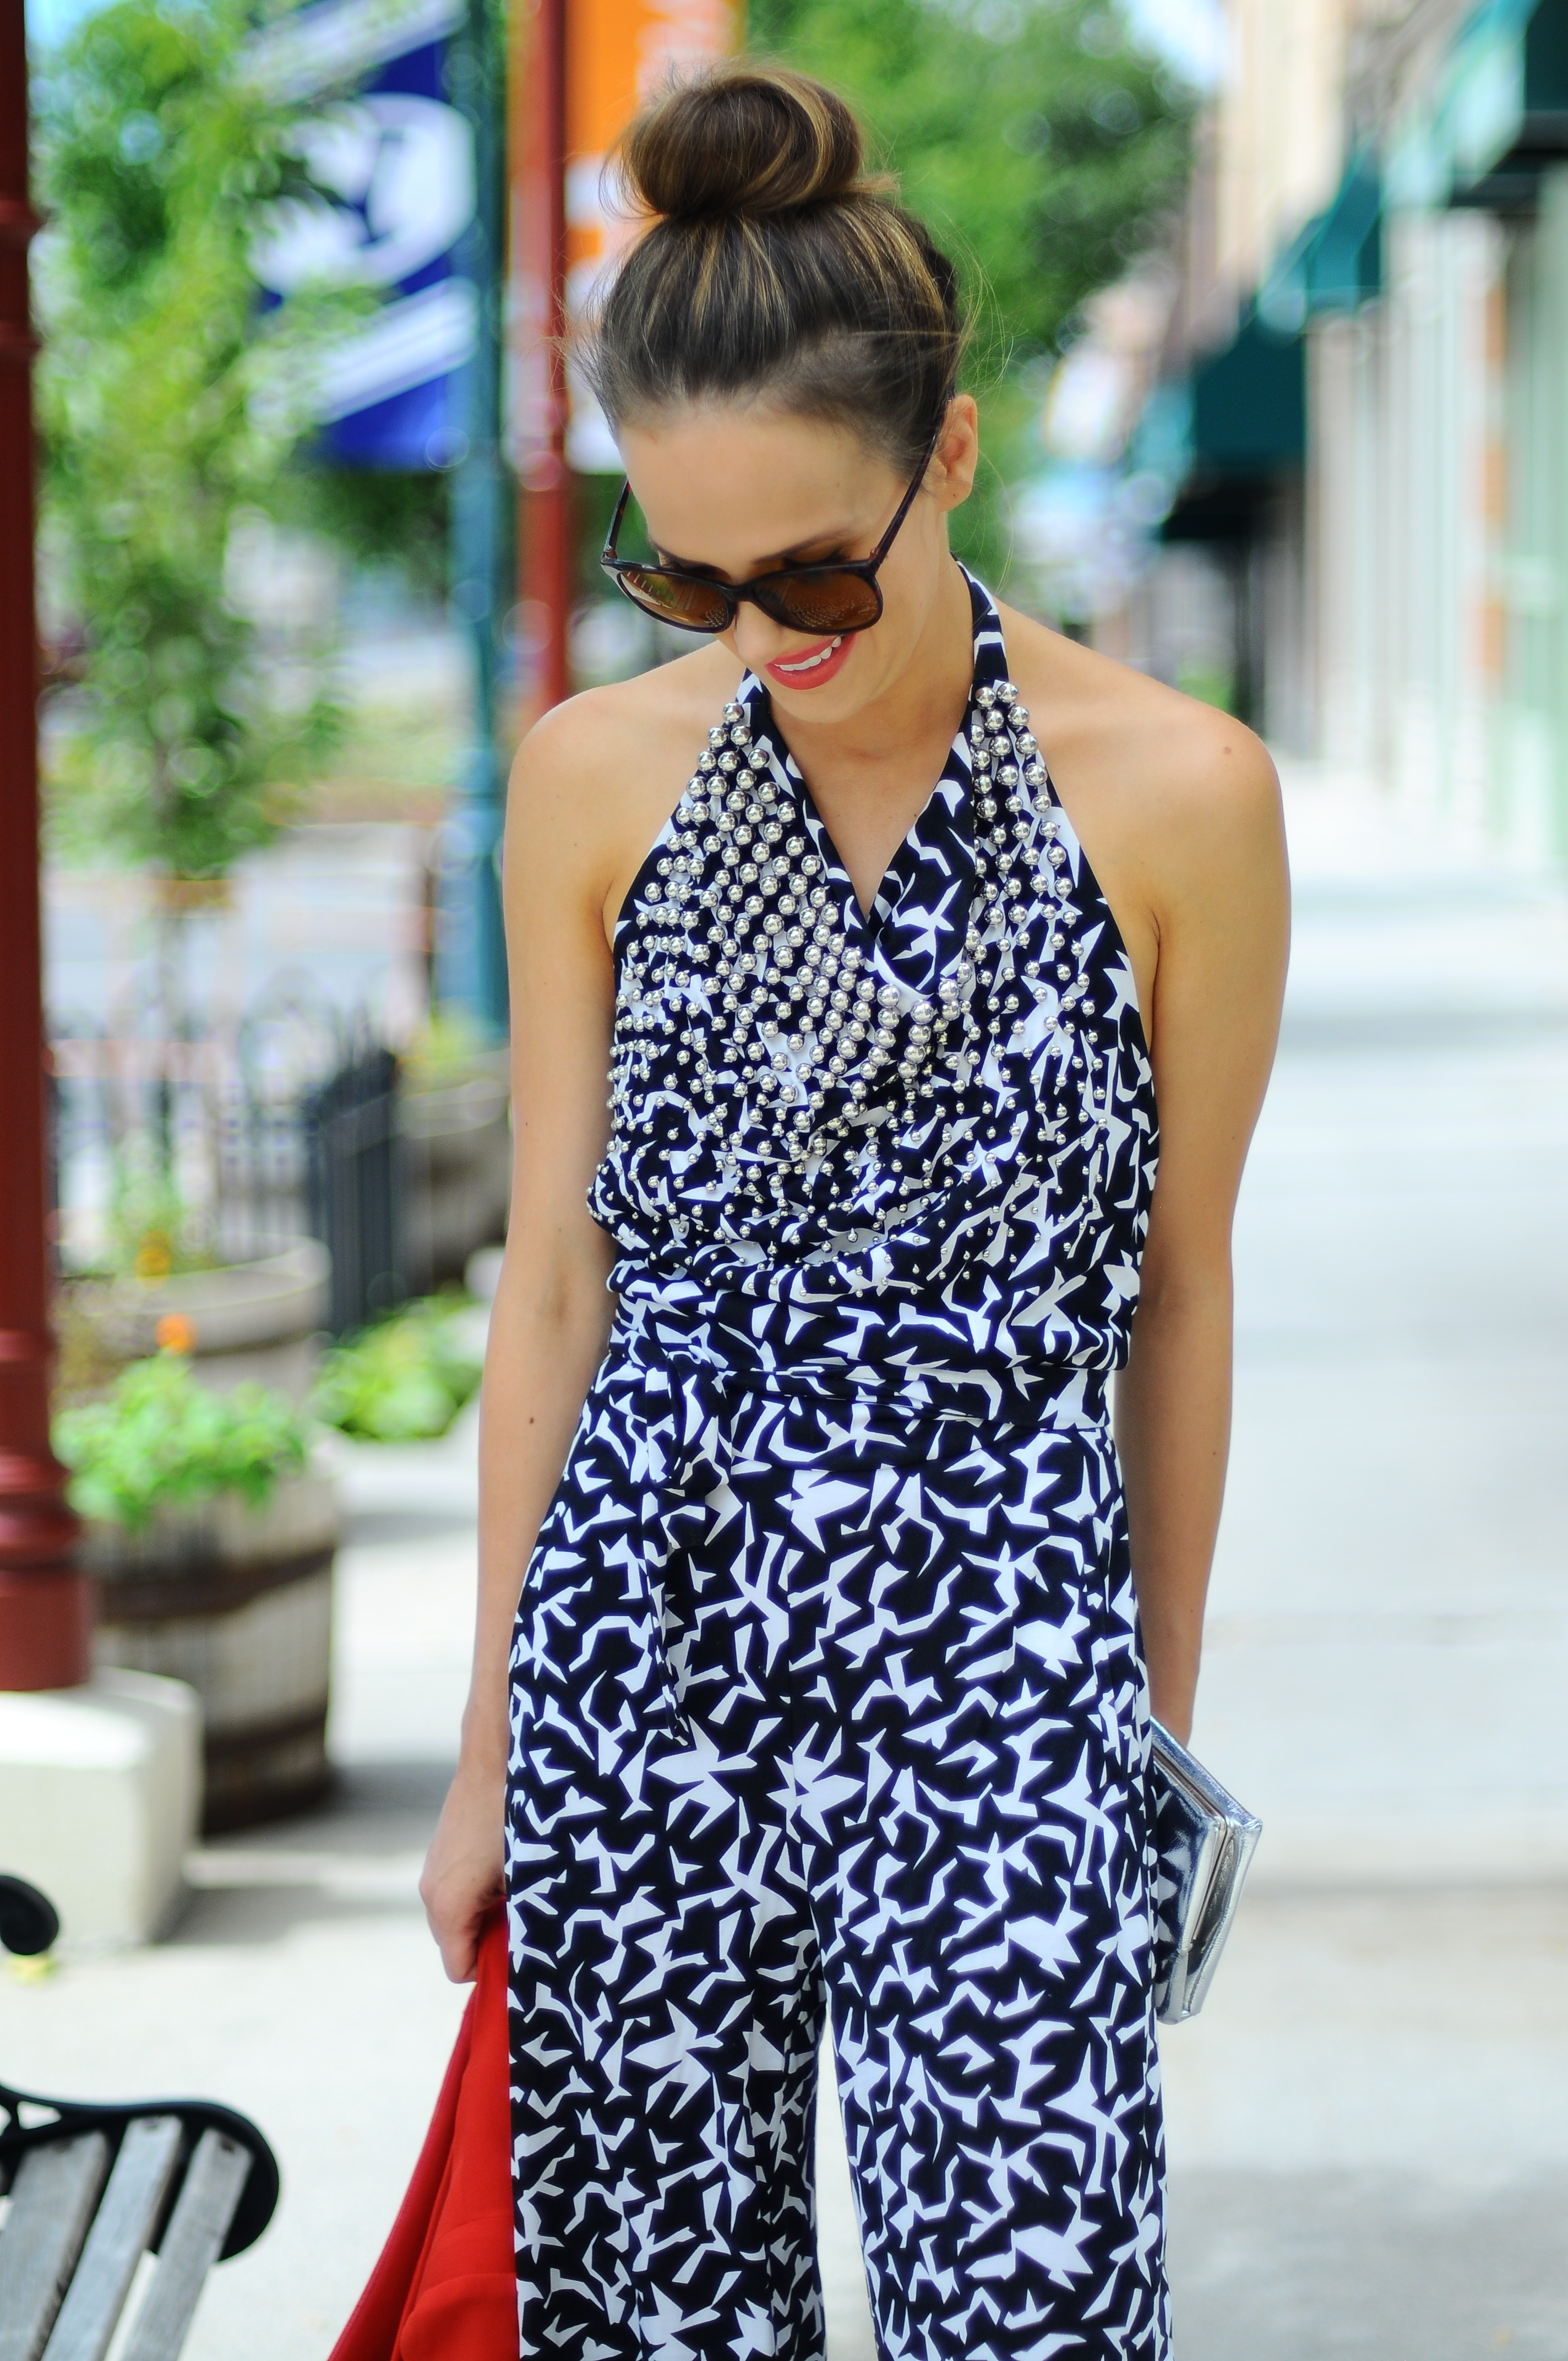 Fashion Fuse Clothing: Jump Suit Yourself (under $150 Too) • The Fashion Fuse